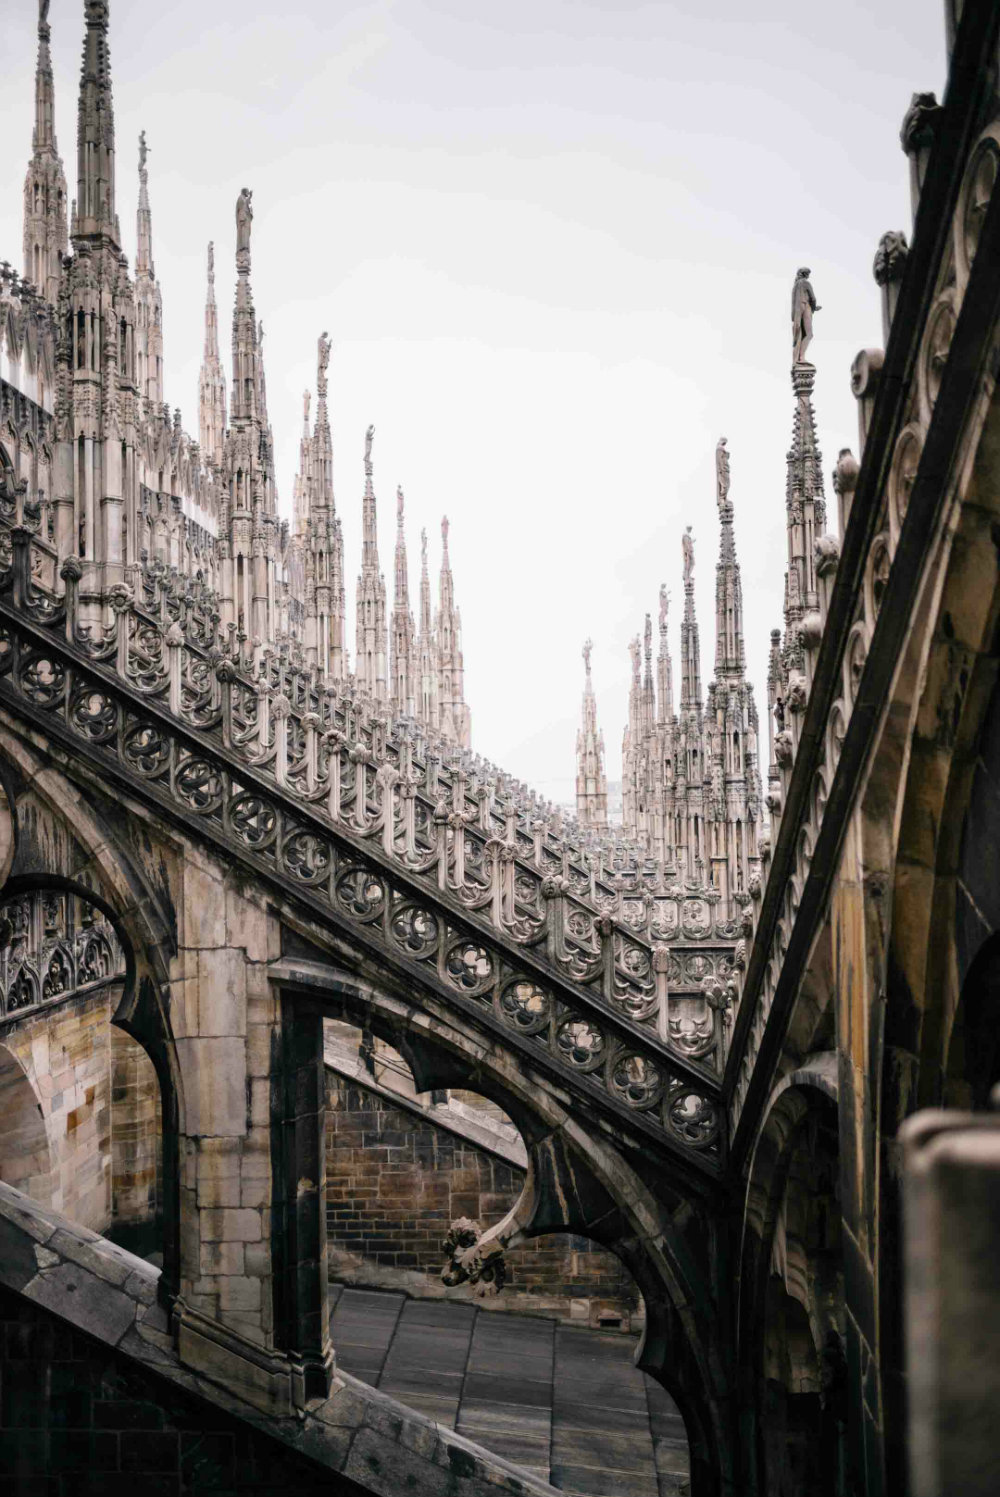 7 Most Instagrammable Places In Milan luxury gift ideas for valentine's day Ultimate Luxury Gift Ideas for Valentine's Day 7mostinstagrammableplacesinmilan01 luxury gift ideas for valentine's day Ultimate Luxury Gift Ideas for Valentine's Day 7mostinstagrammableplacesinmilan01